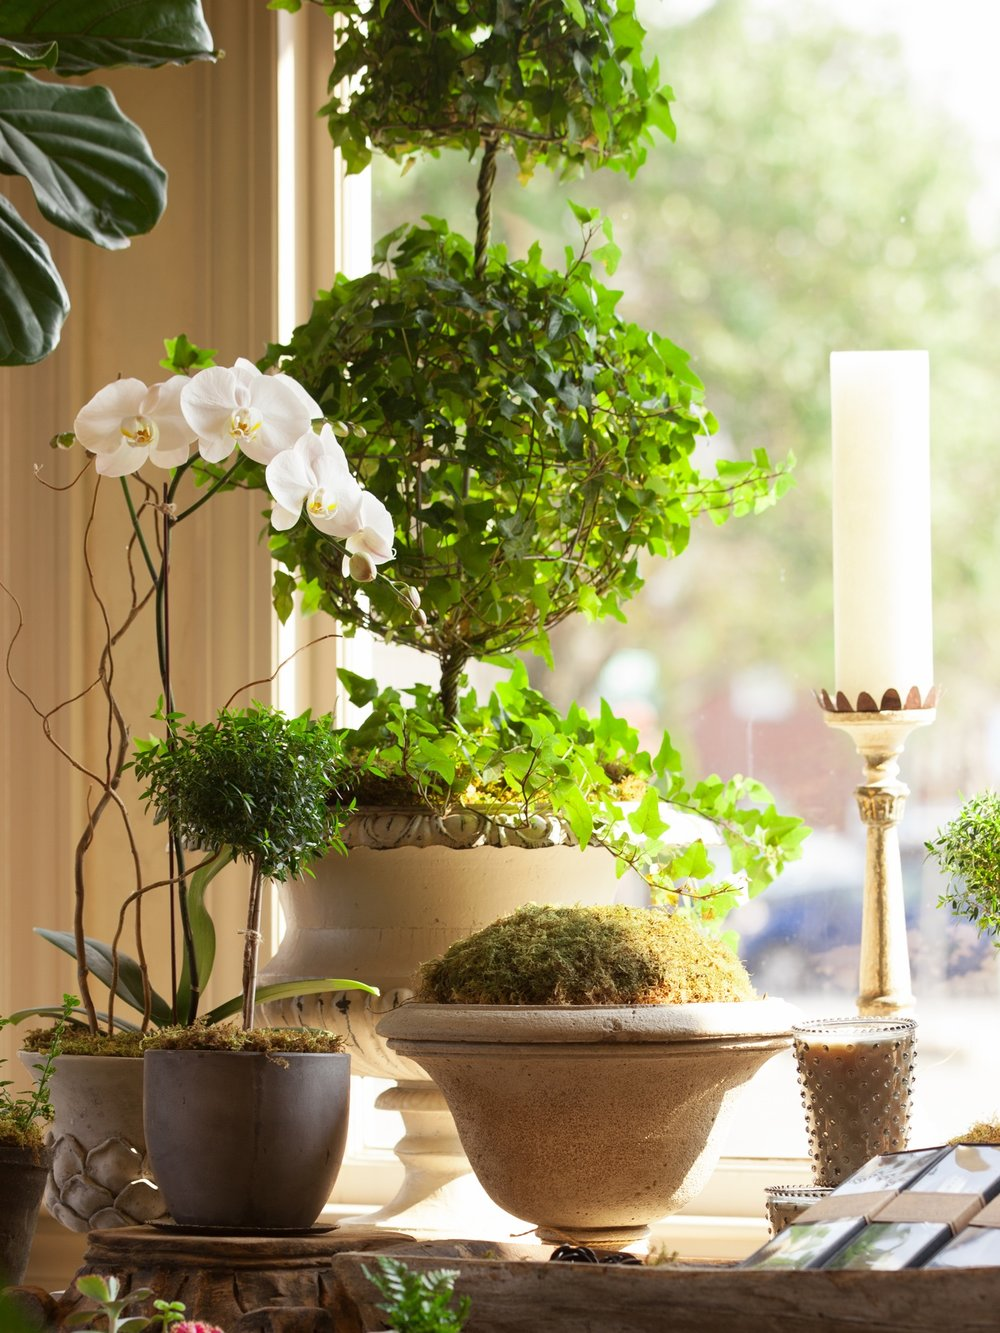 ivy-topiary-orchid-lesfleurs-house-plants.jpg